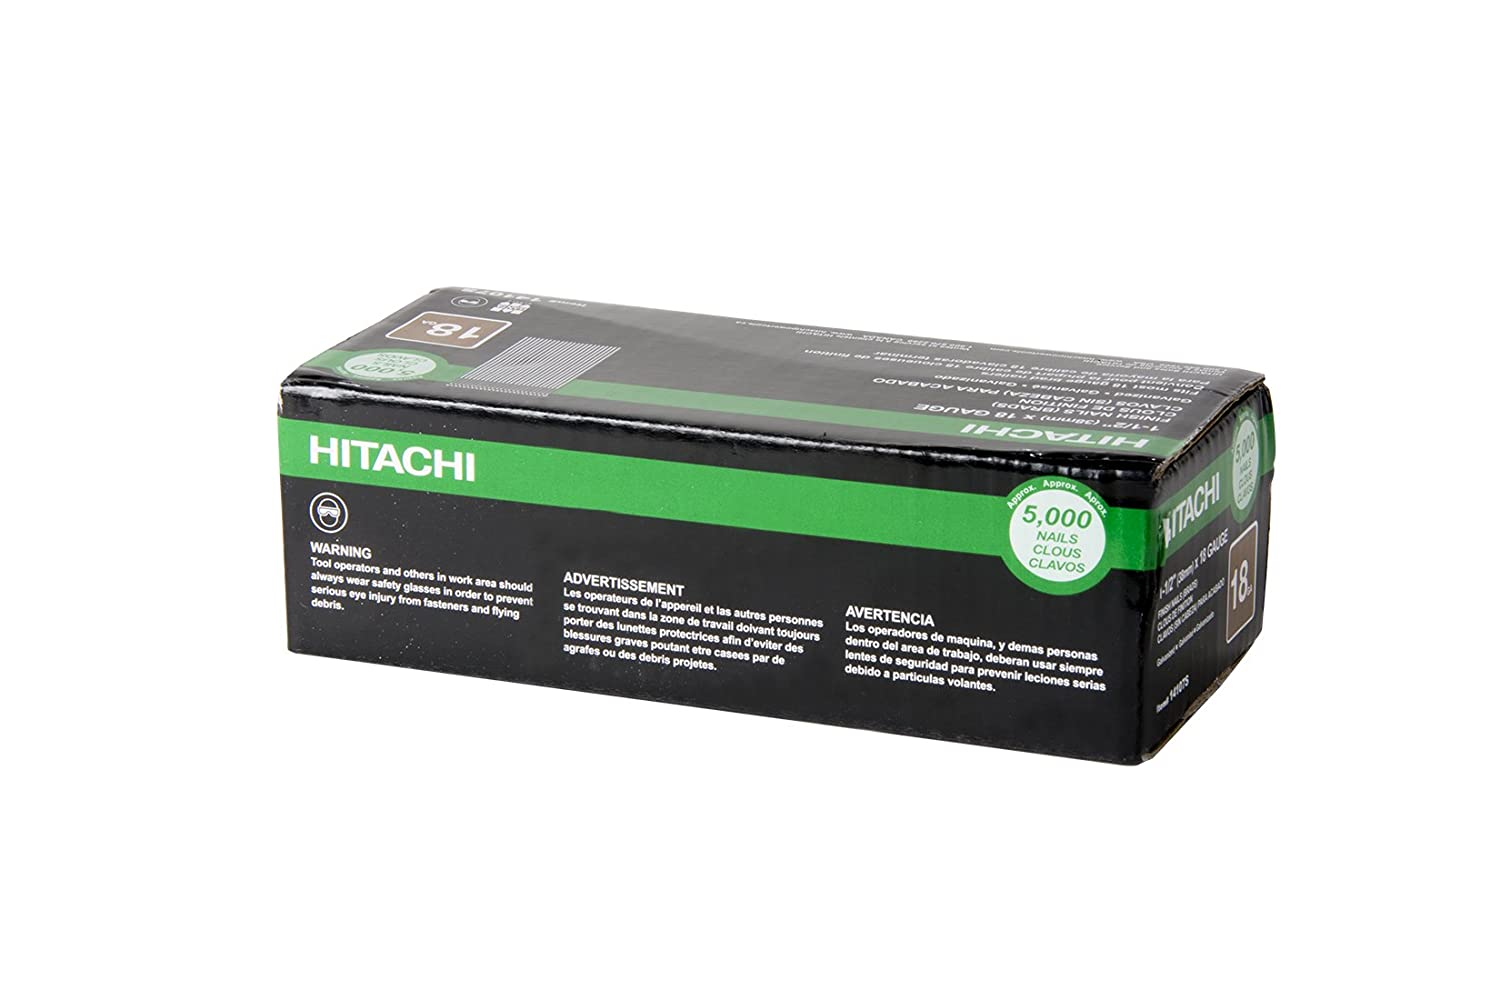 Hitachi 14107S 1 1 2 x 18 GA Finish Nail Electro Galvanized 5000 Count